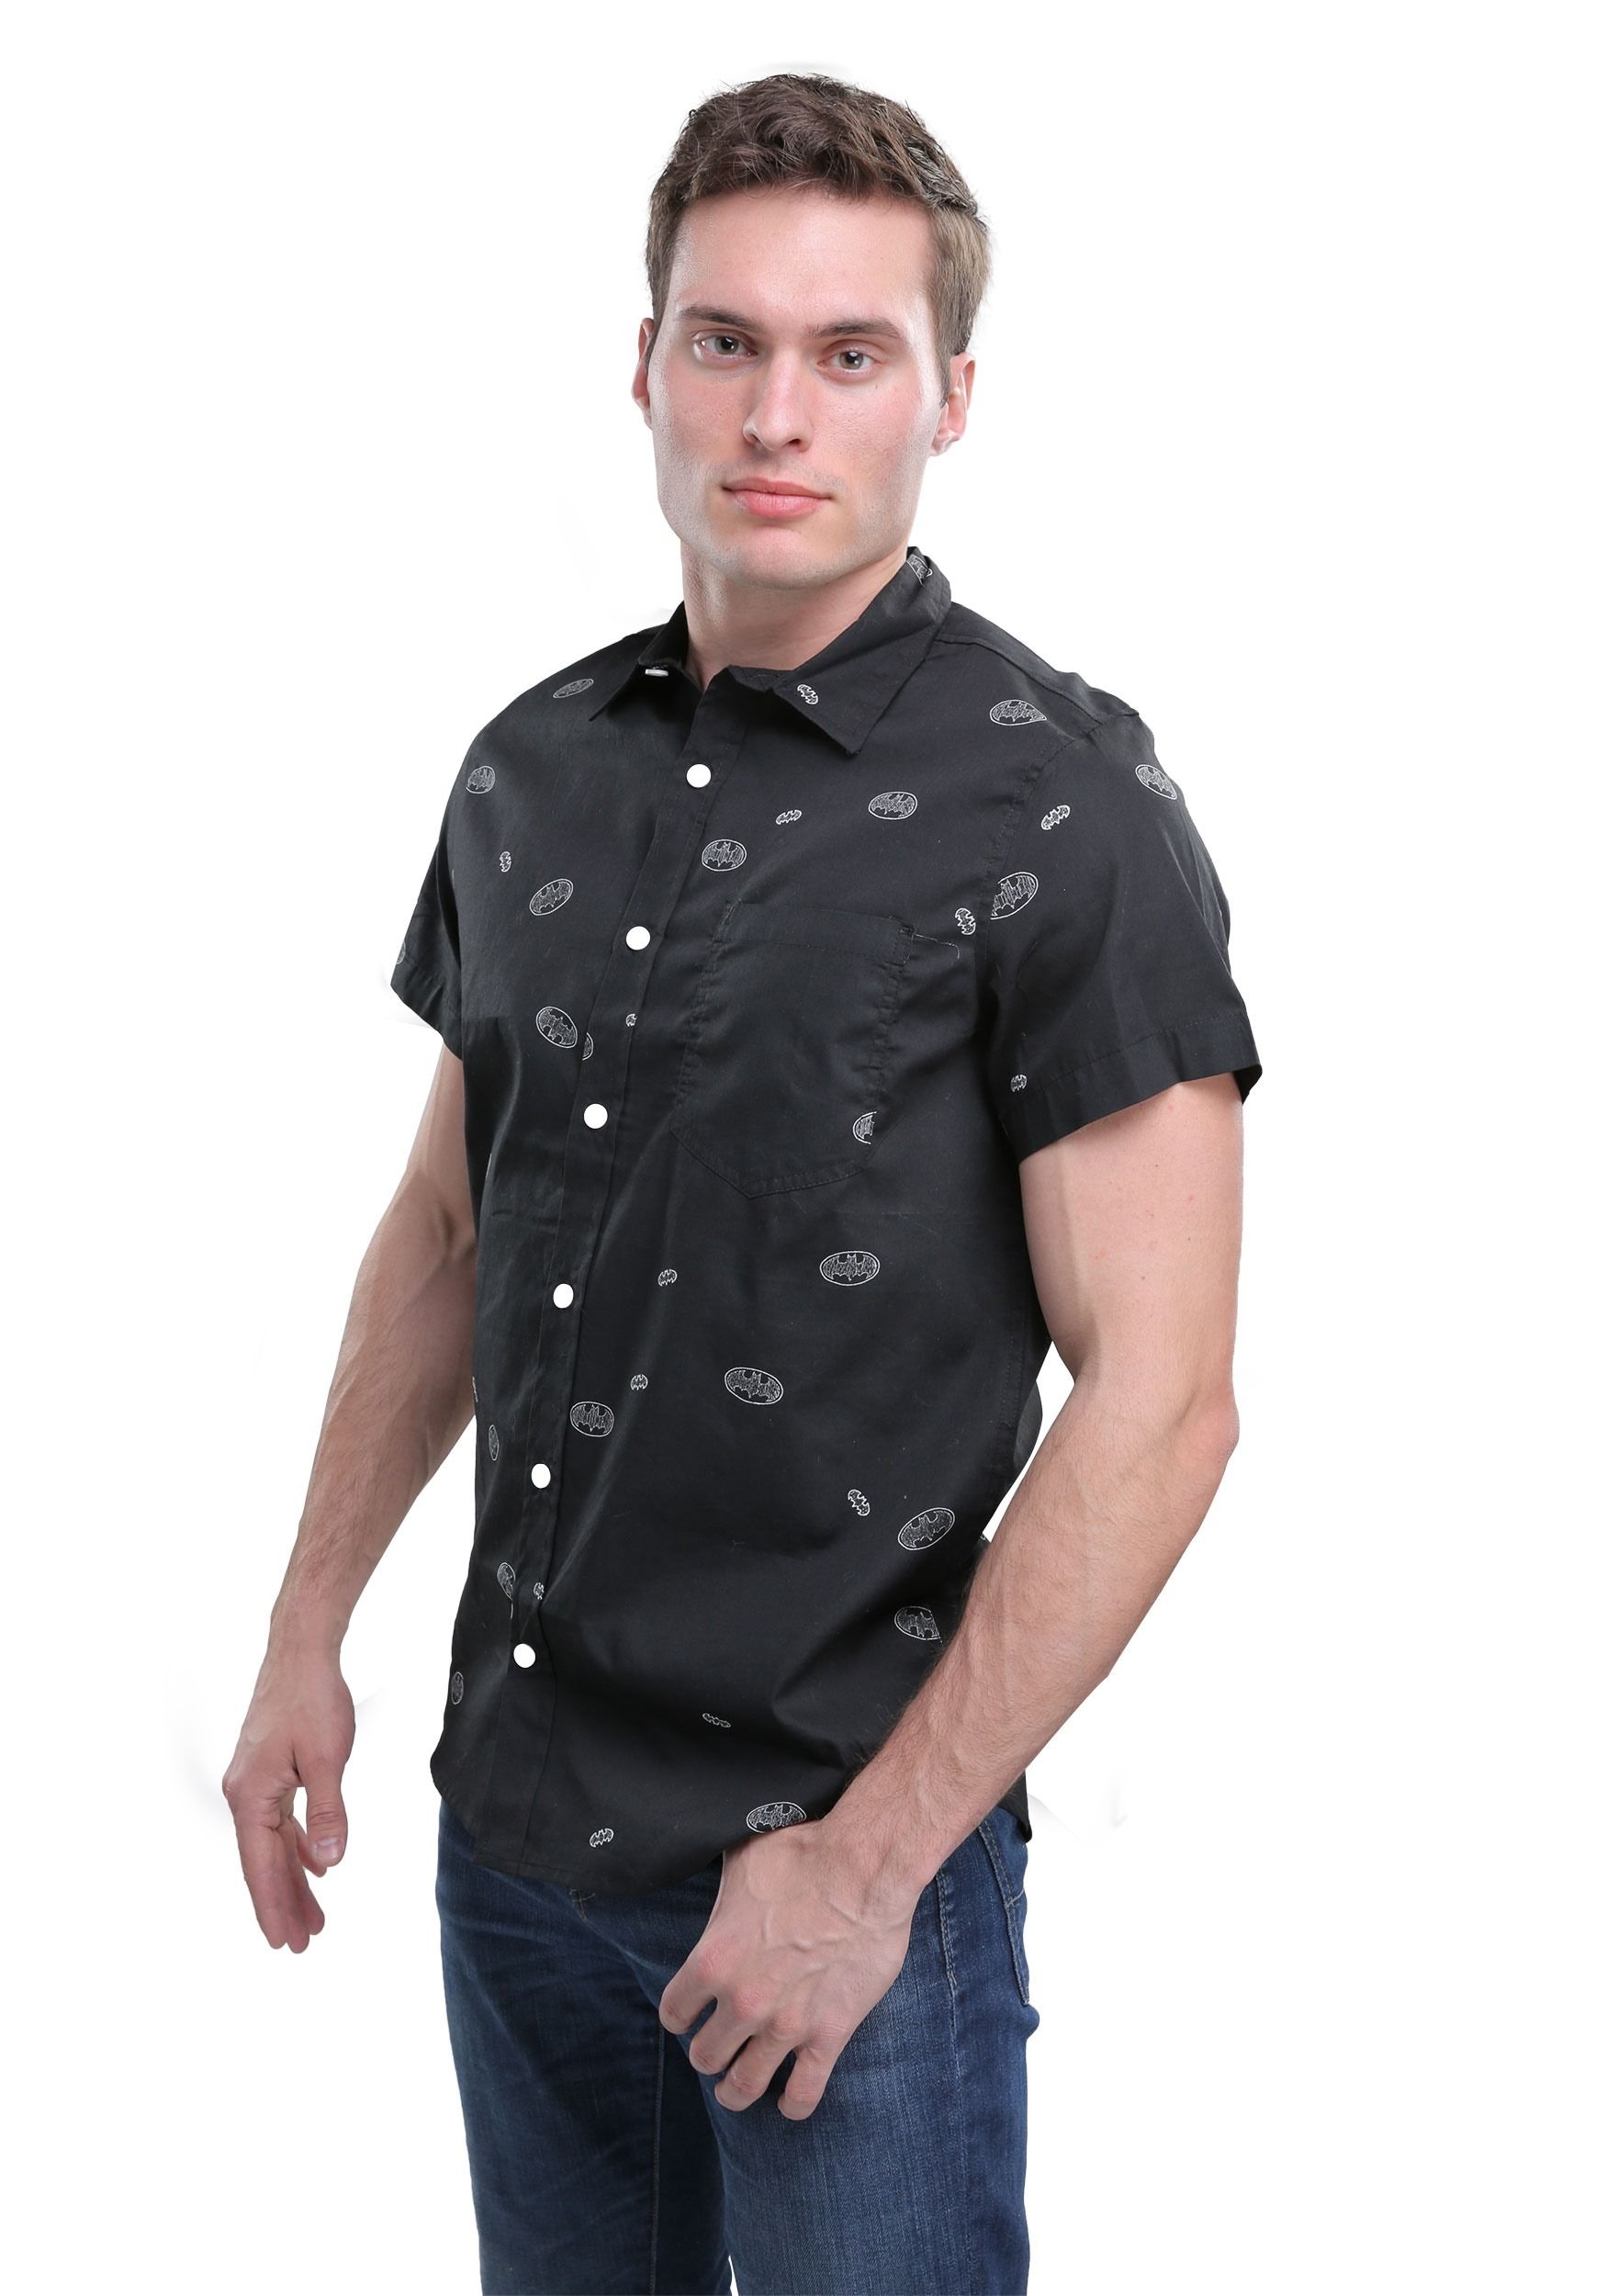 DC Comics Batman Woven Button Down Shirt for Men